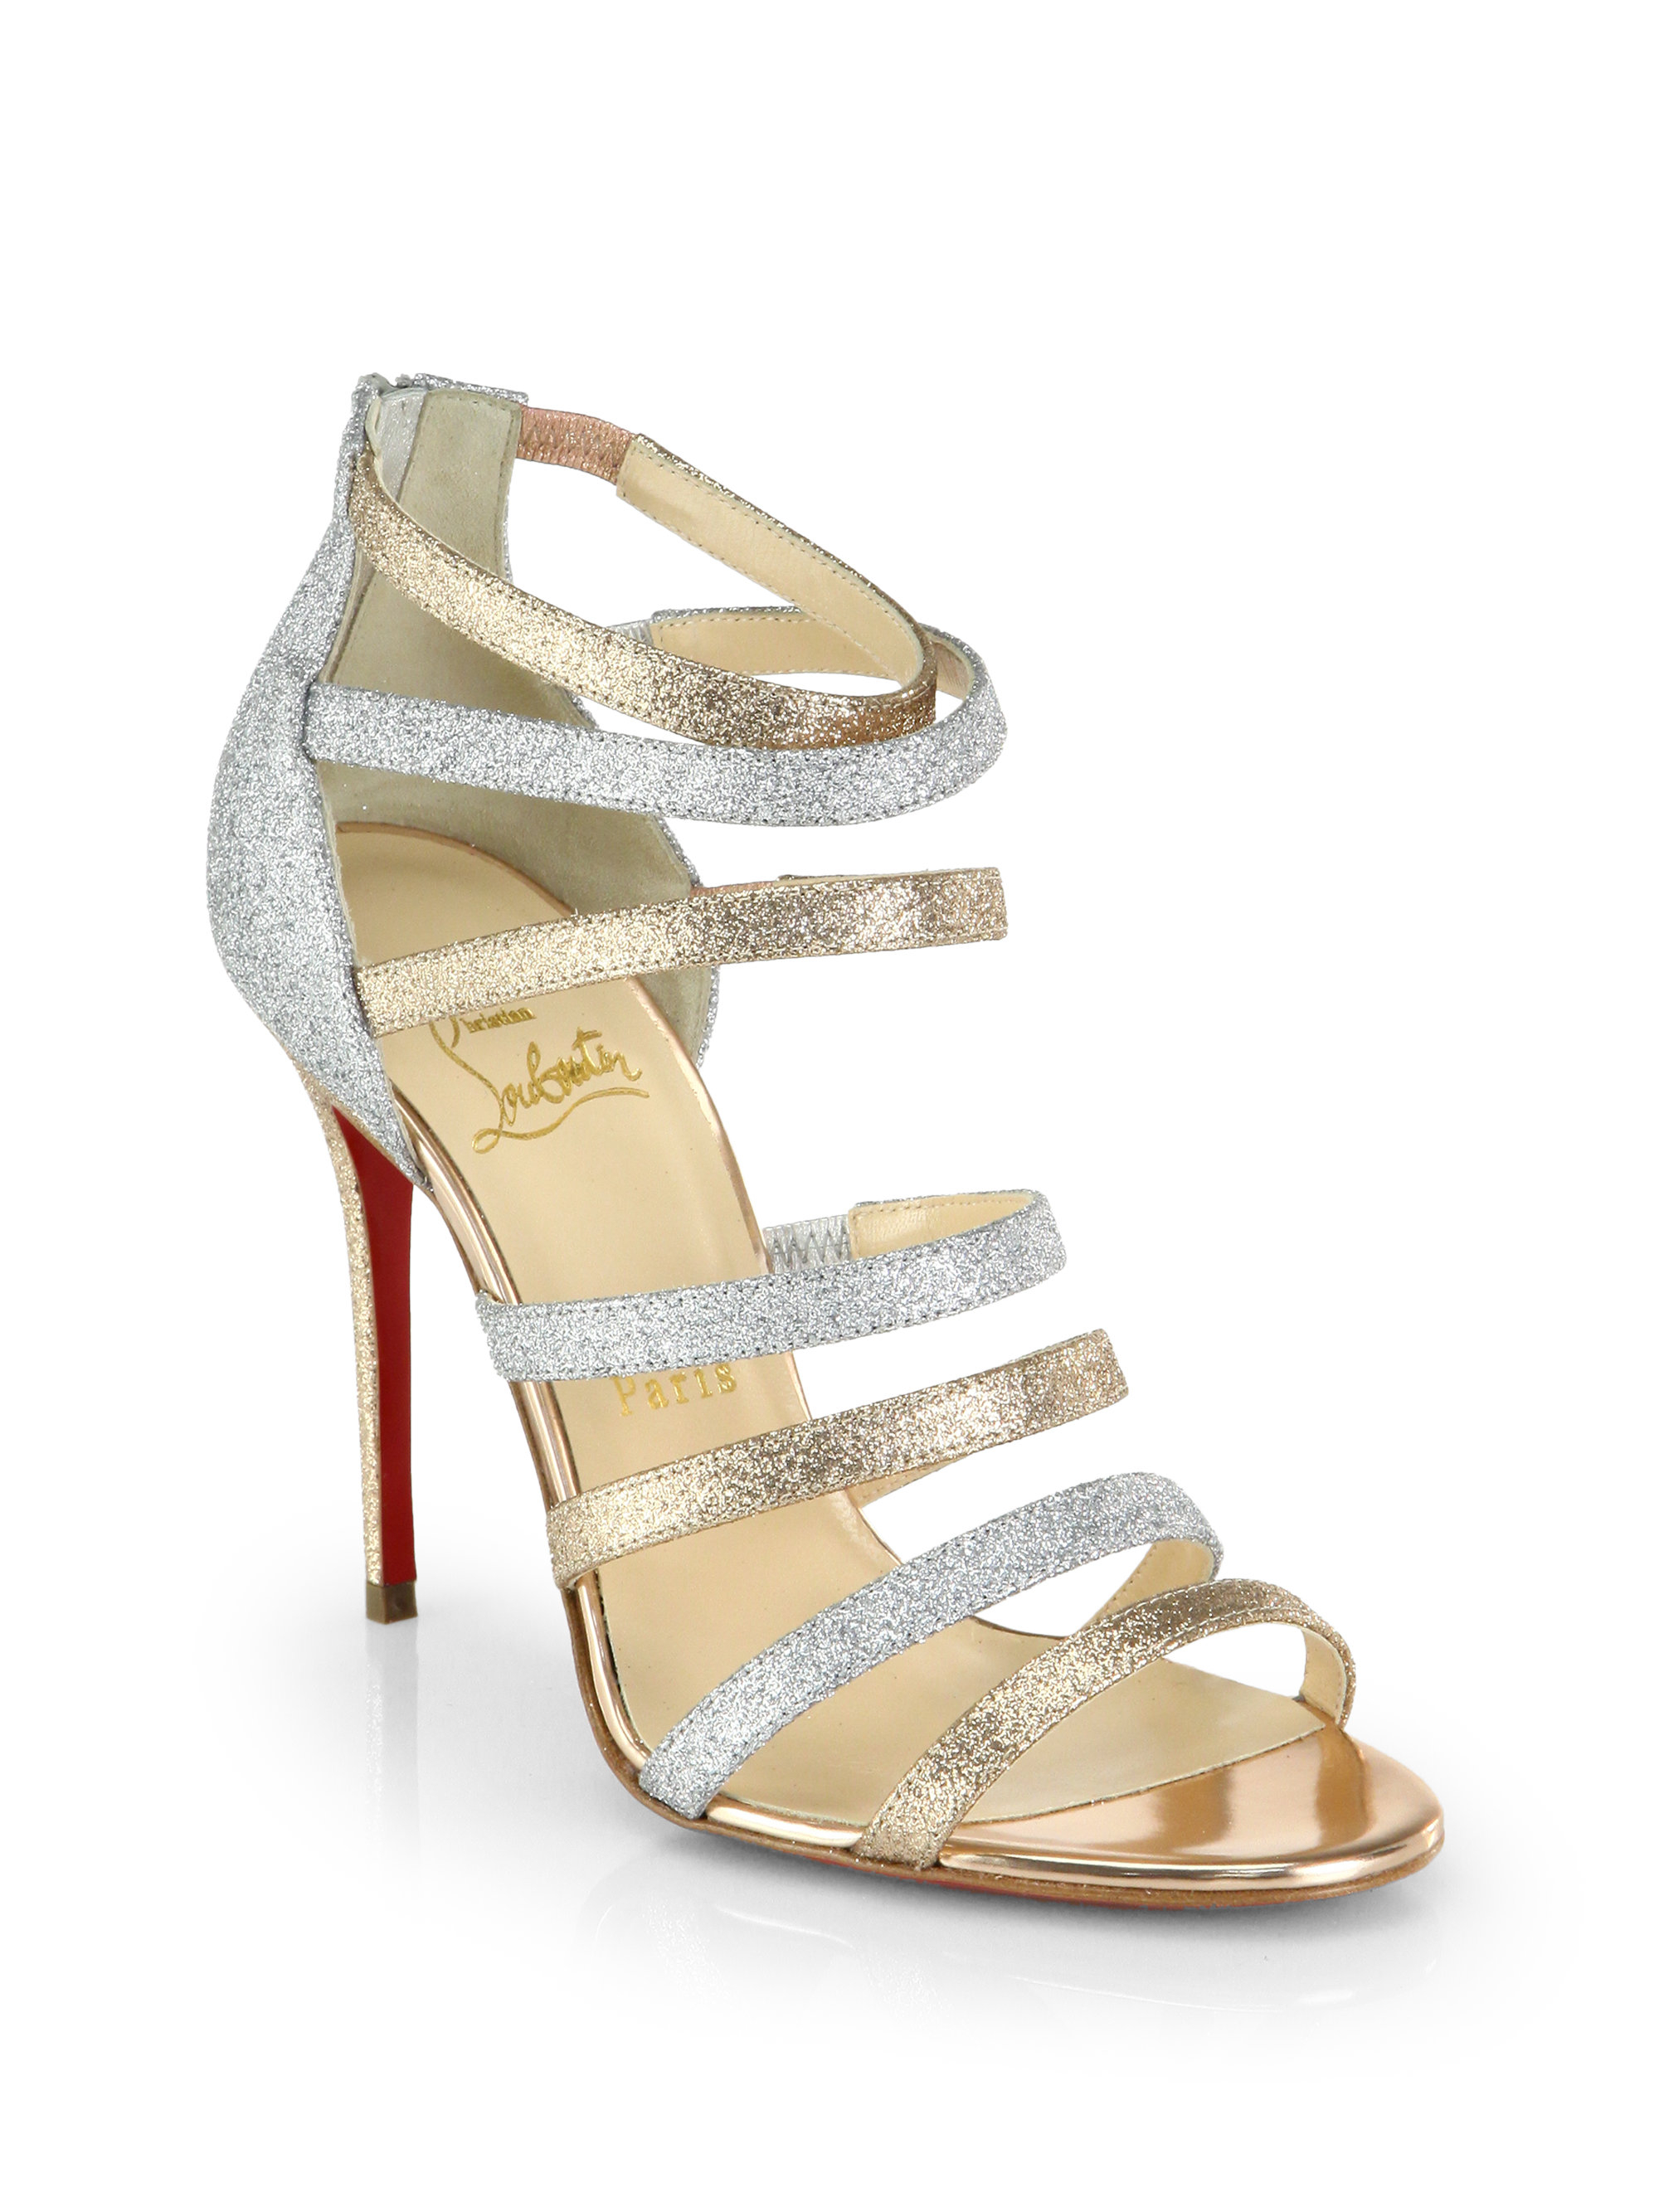 Christian Louboutin Marniere Strappy Glitter Sandals In